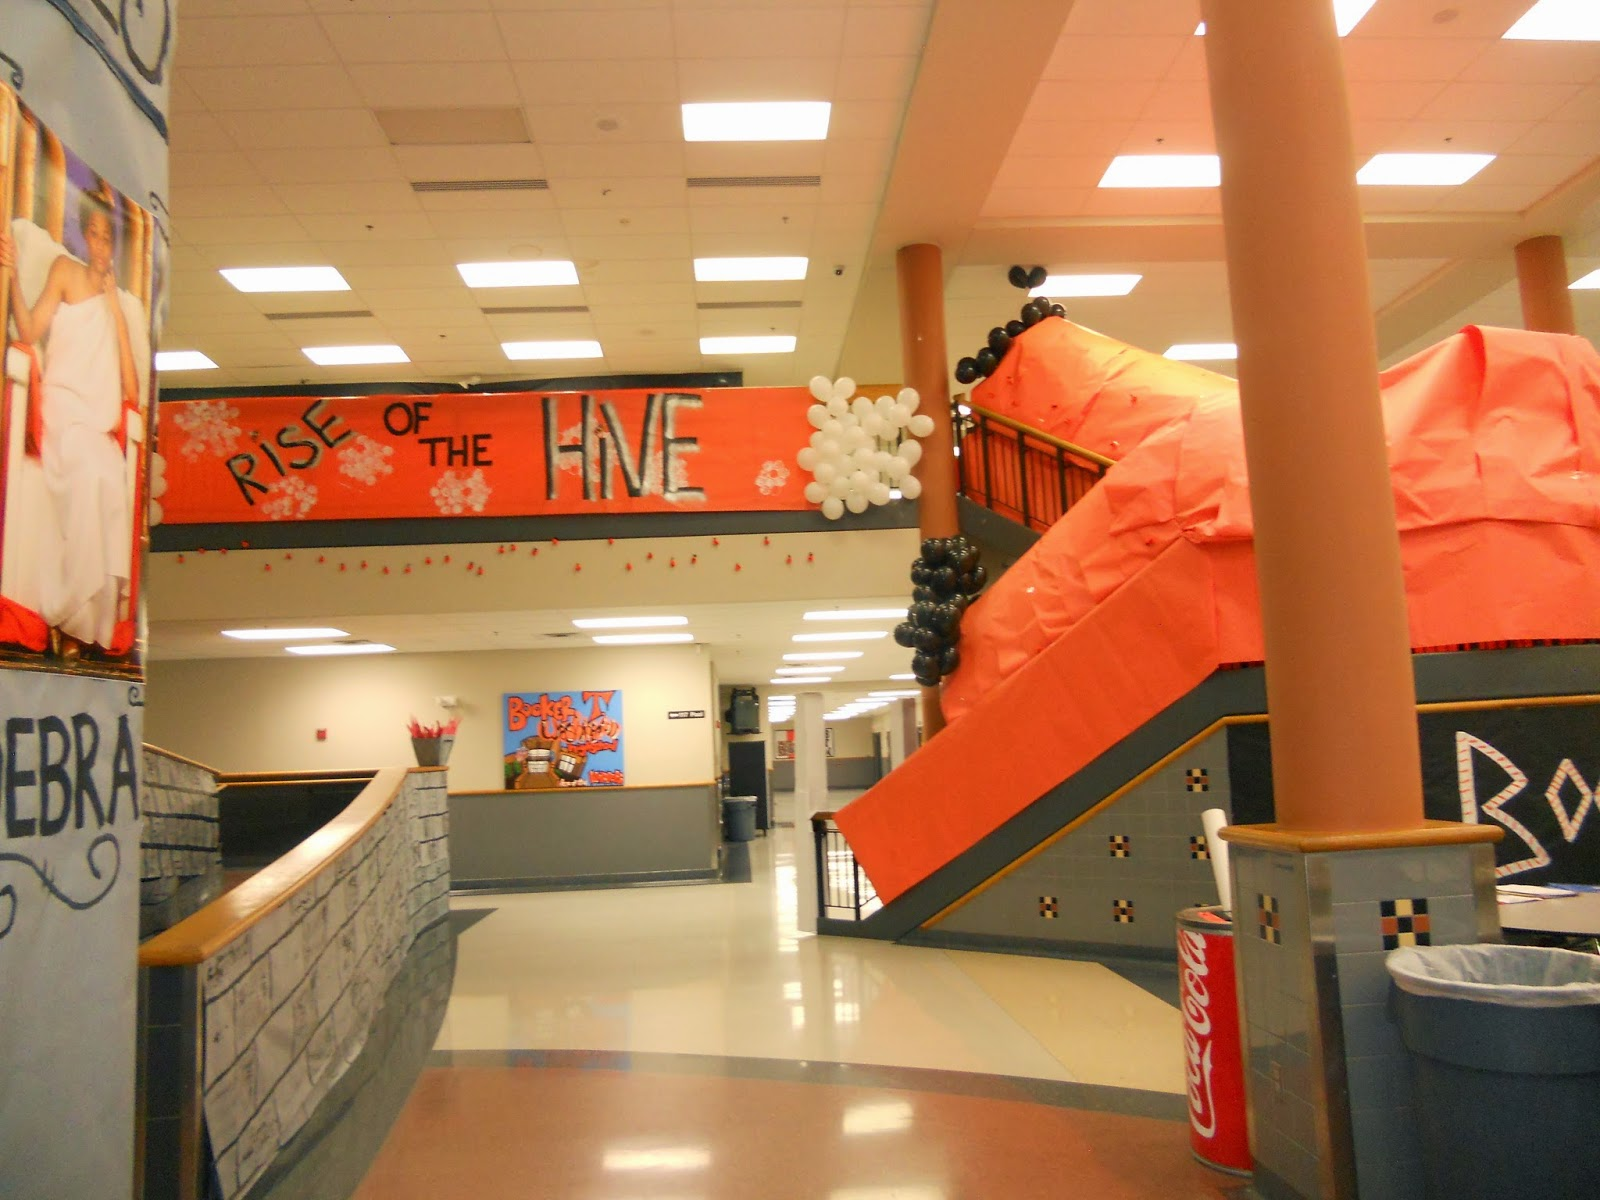 ms haughey s history class homecoming 2014 300 rise of the hive